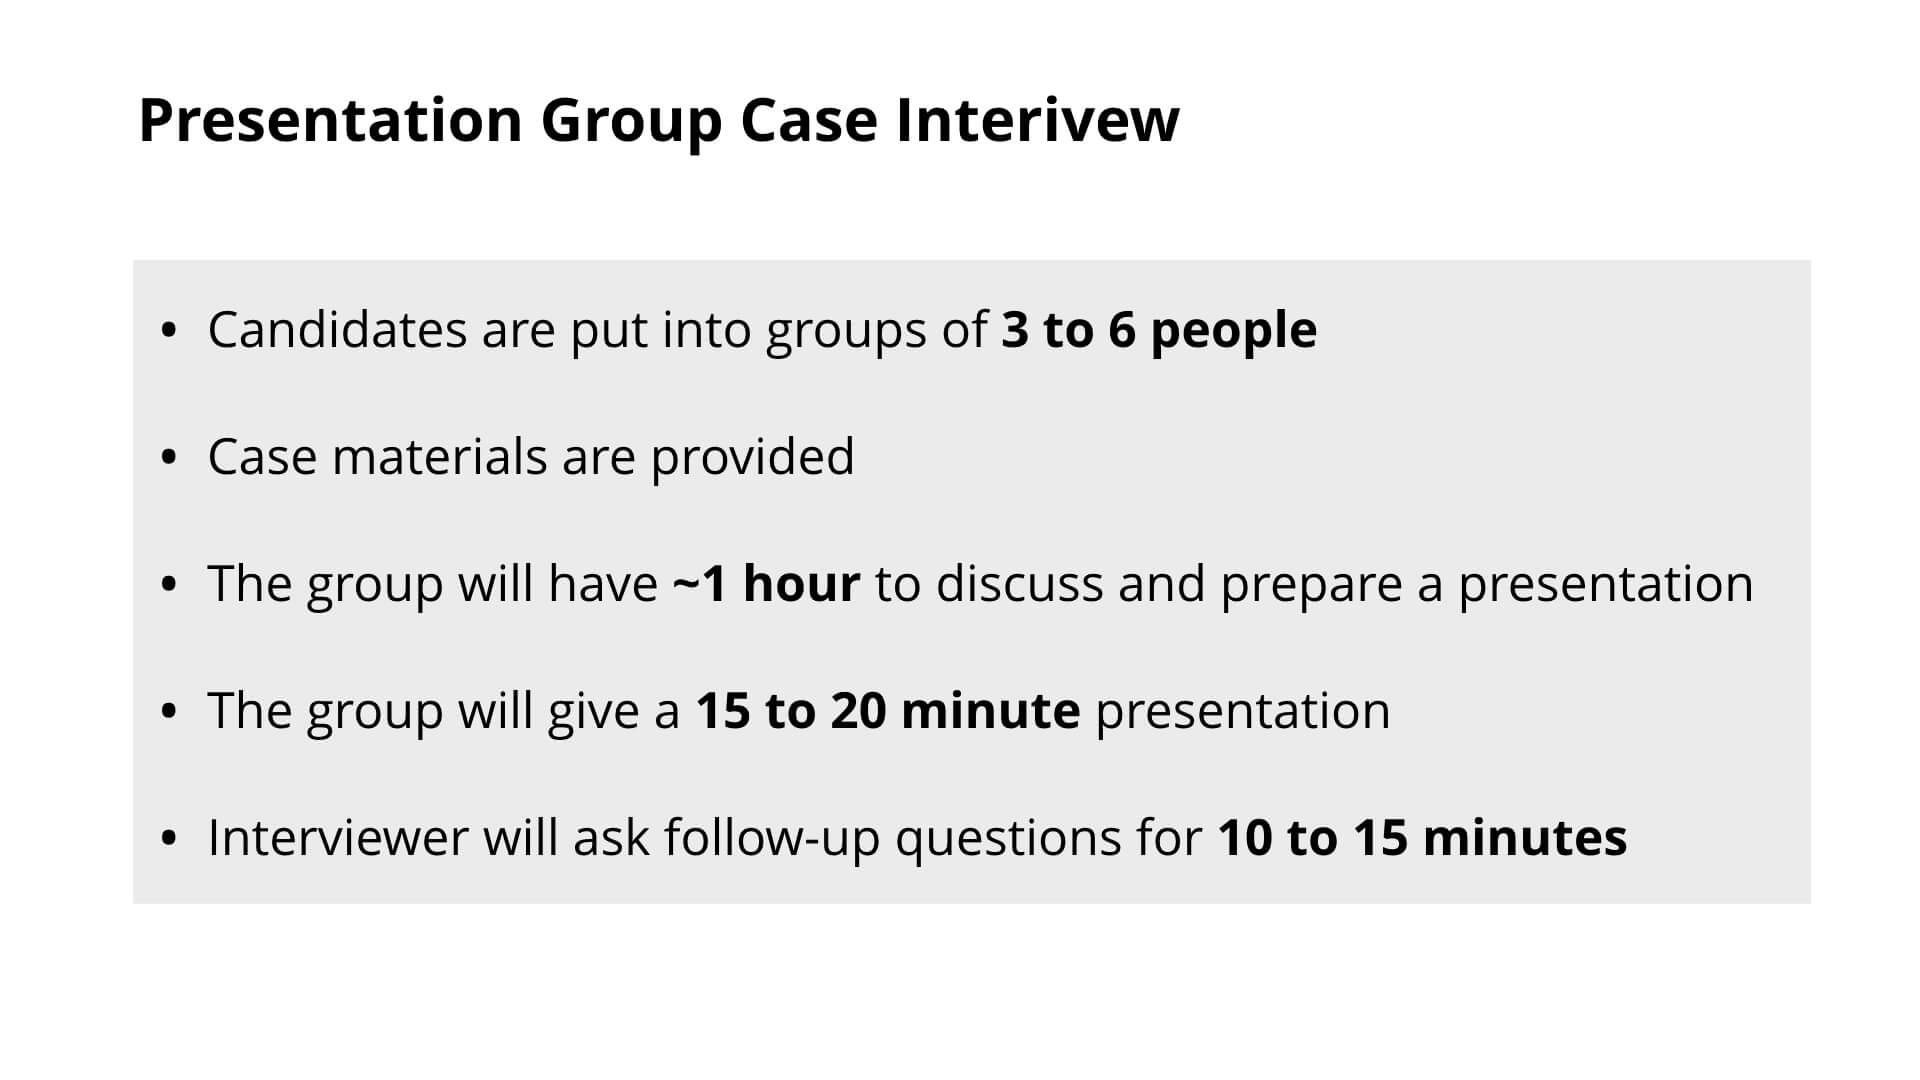 Consulting Group Case Interview - Presentation